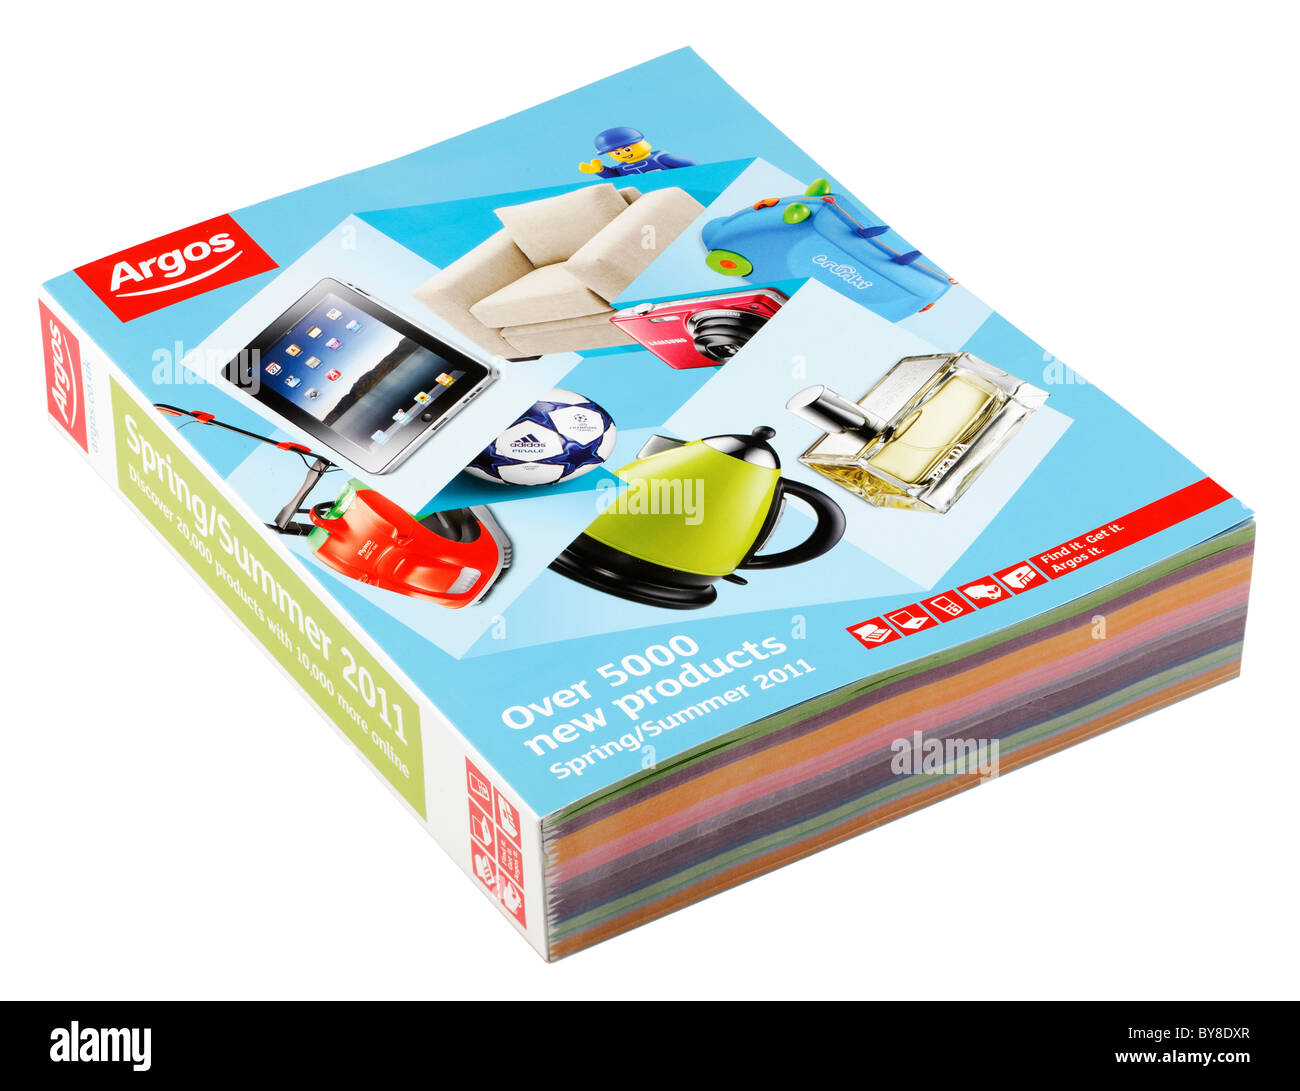 argos catalog for spring summer 2011 stock photo royalty free image 33992639 alamy. Black Bedroom Furniture Sets. Home Design Ideas